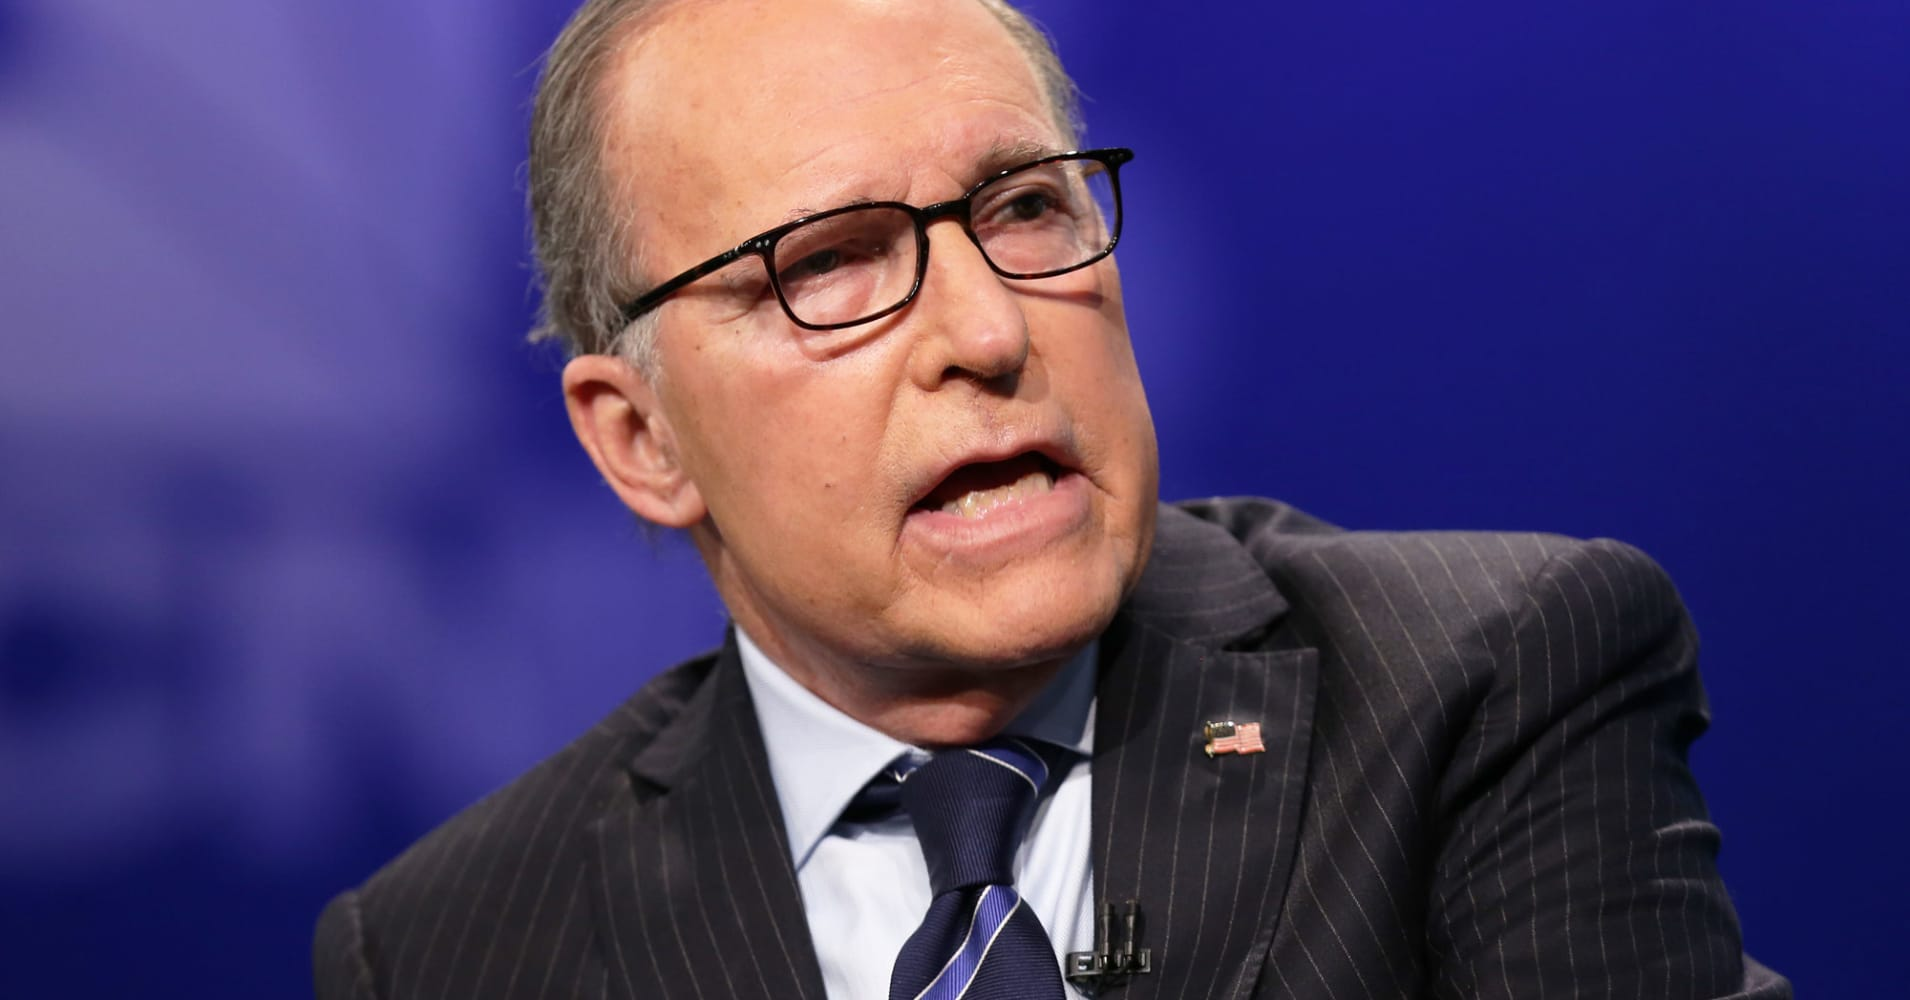 Kudlow says White House looking at infrastructure plan, including energy pipelines, LNG terminals